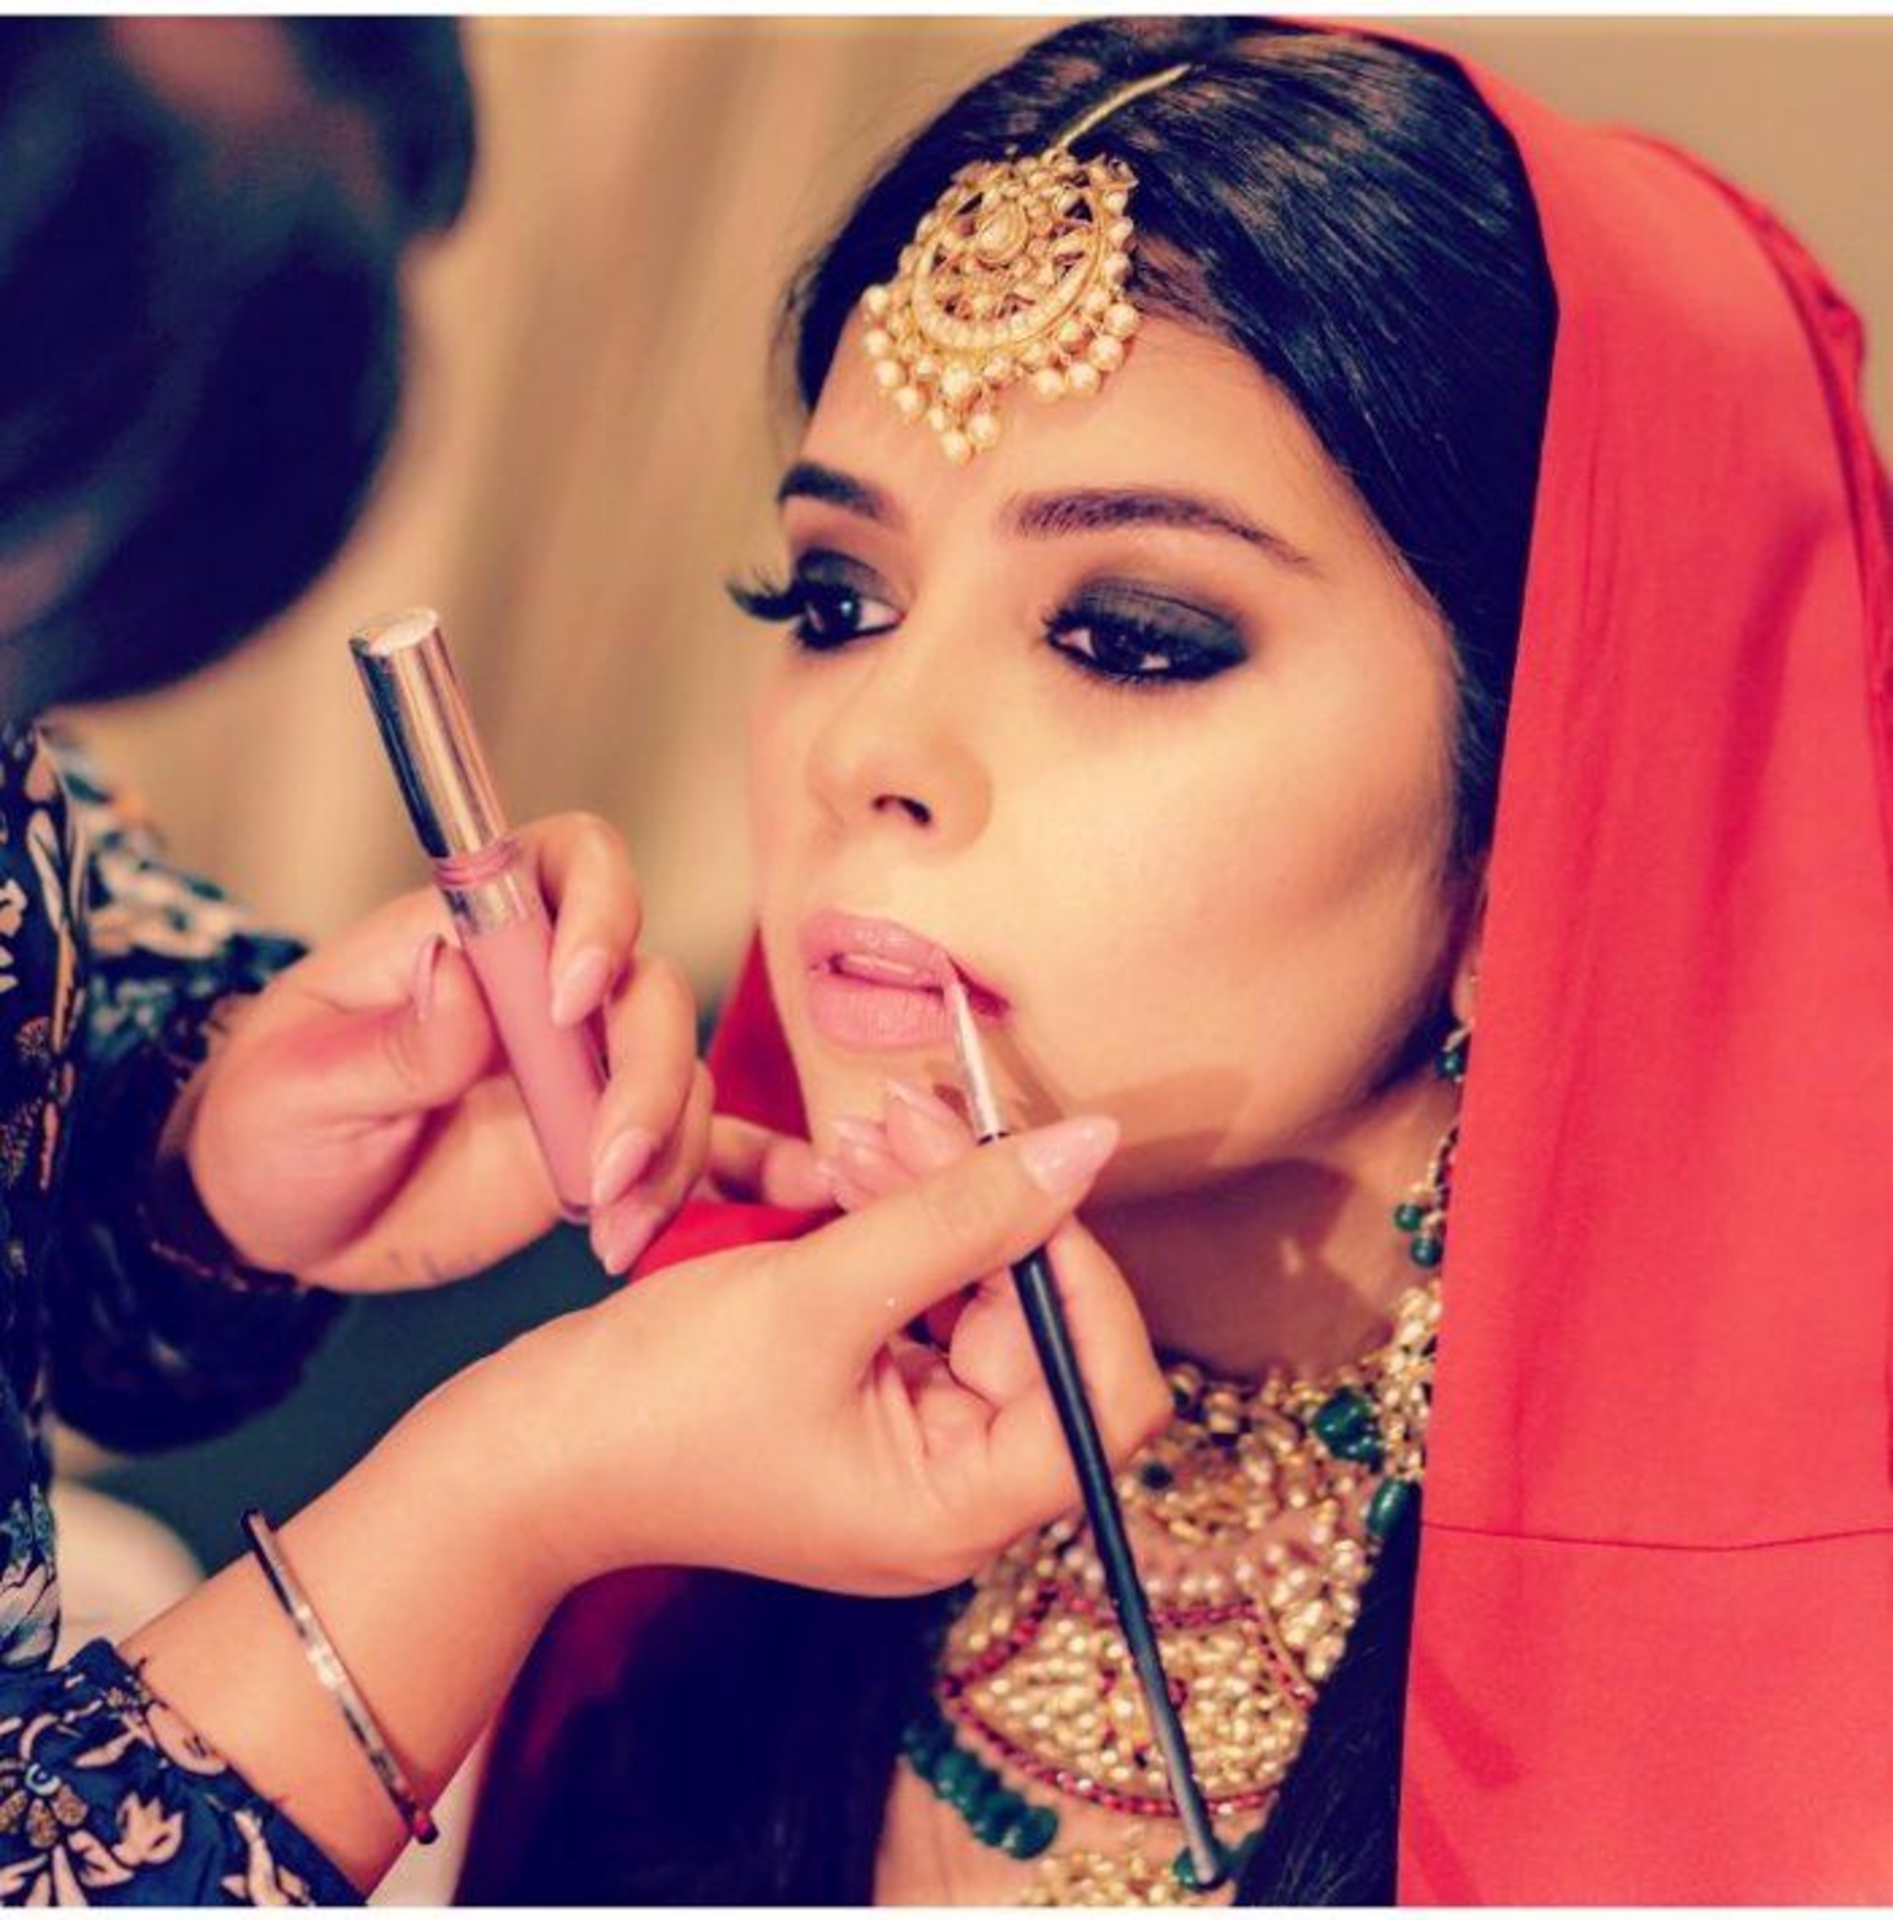 Makeup Do's and Don'ts for the Indian Bride by Akanksha A image